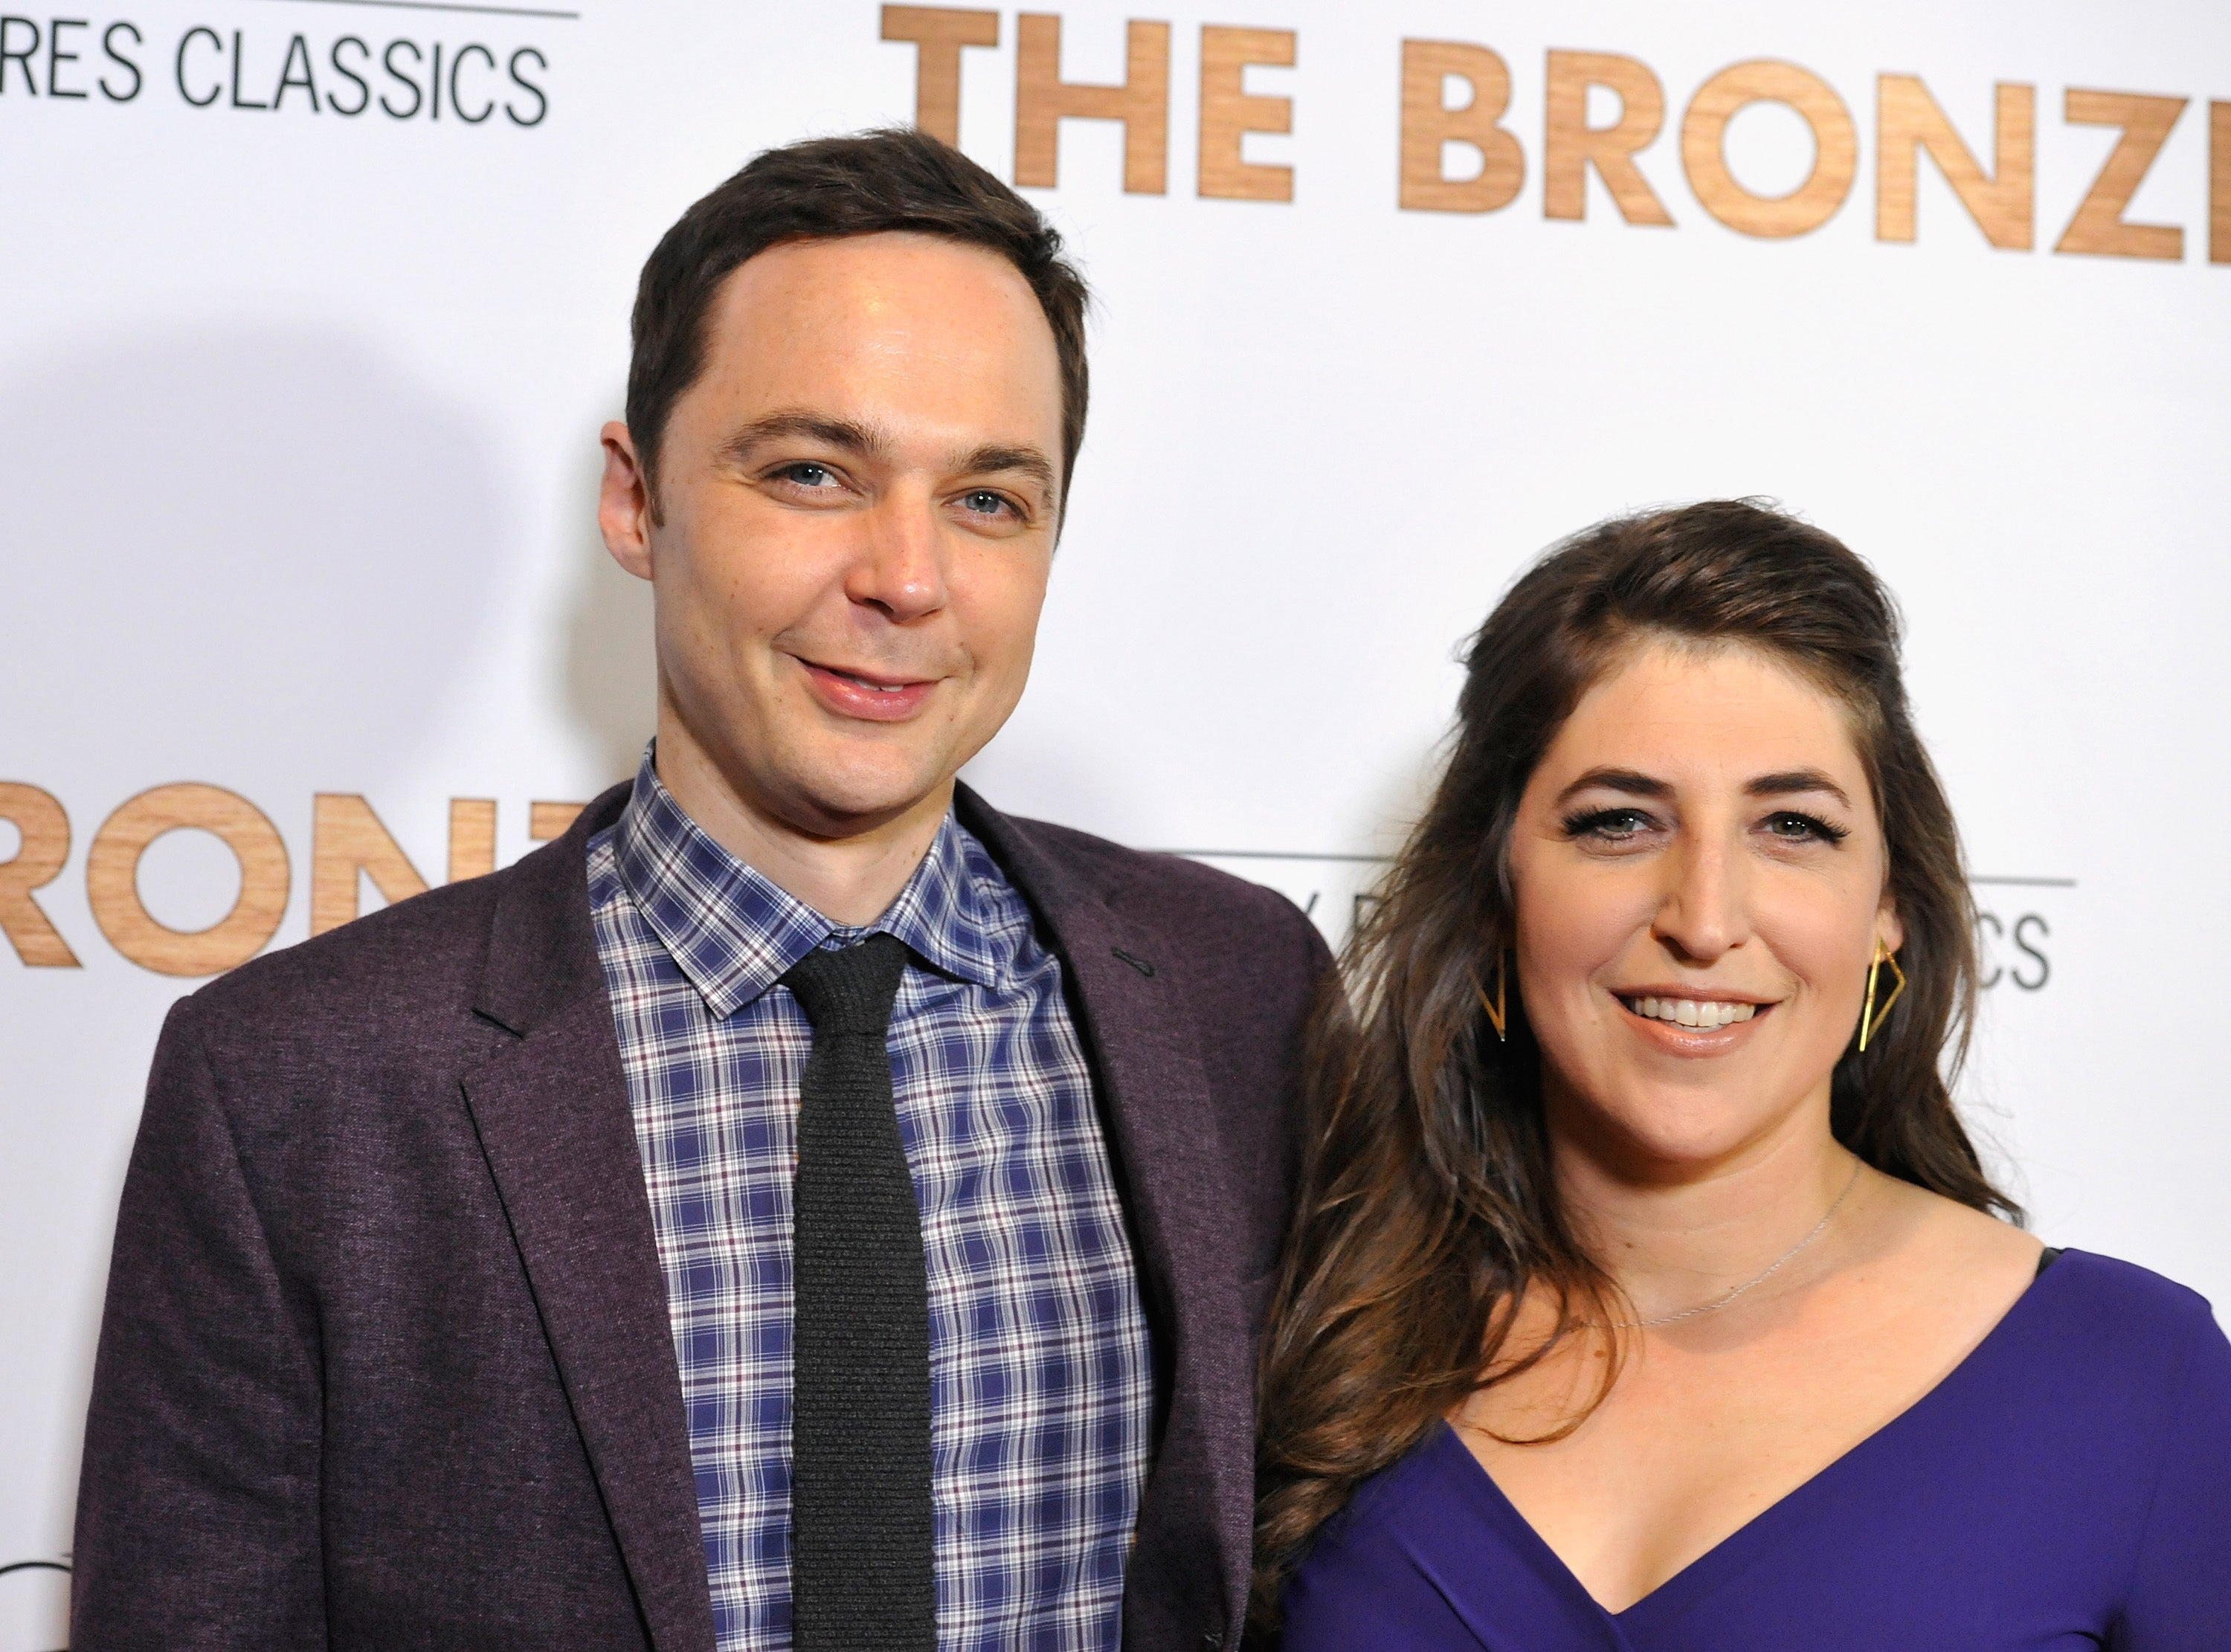 'Big Bang Theory' Co-Stars Jim Parsons and Mayim Bialik Reunite for Her New Show: Details!